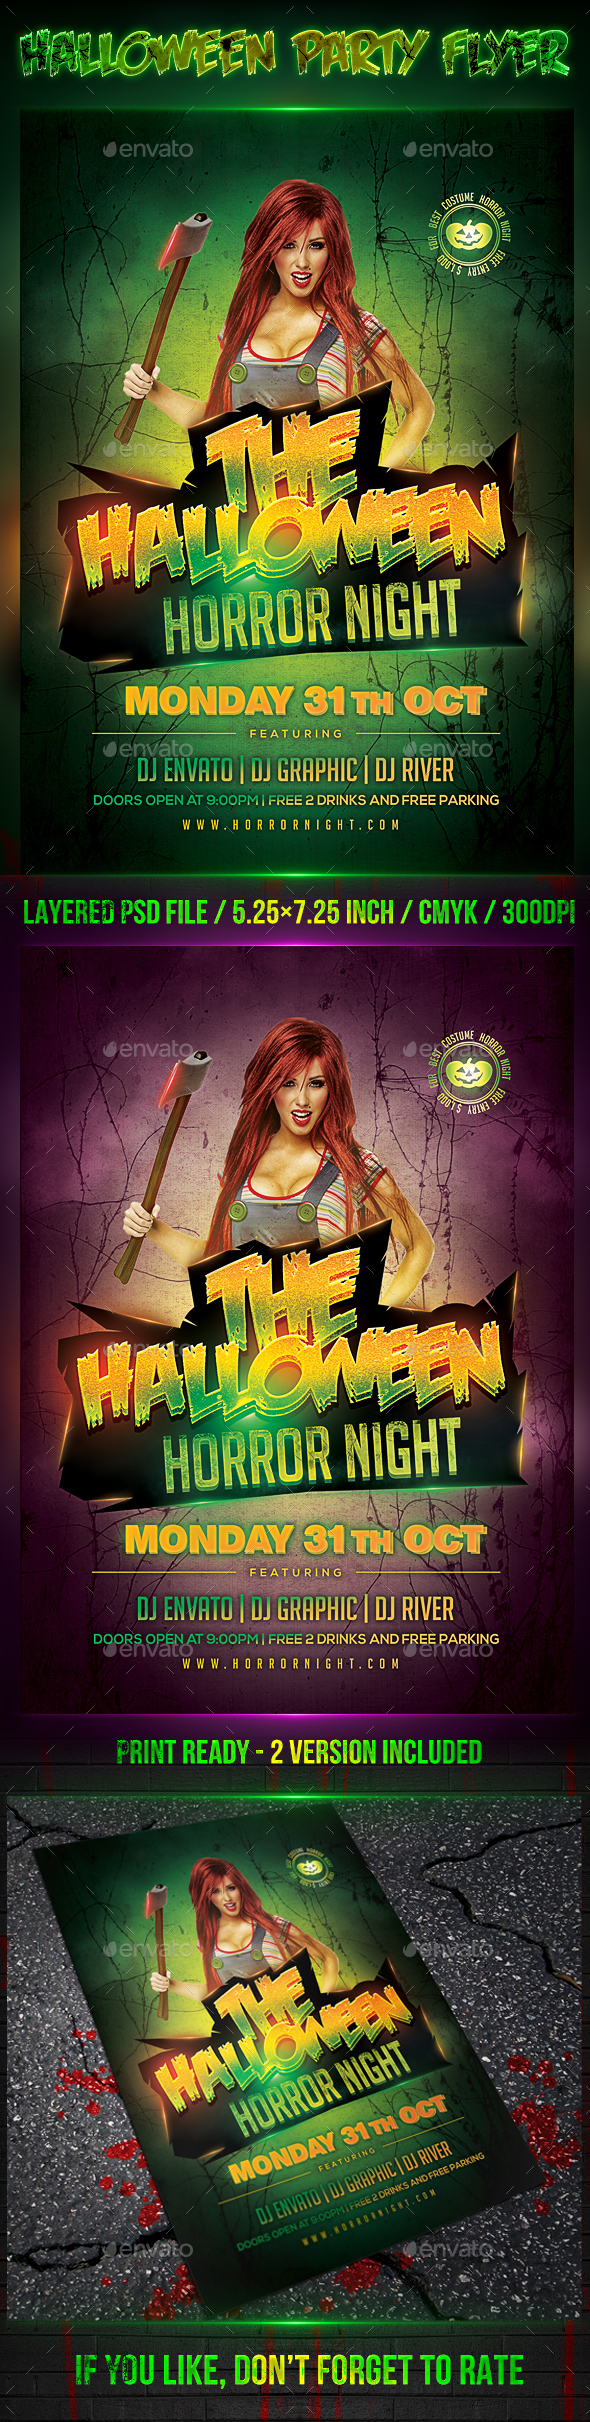 Halloween Party Flyer 2016 - Clubs & Parties Events